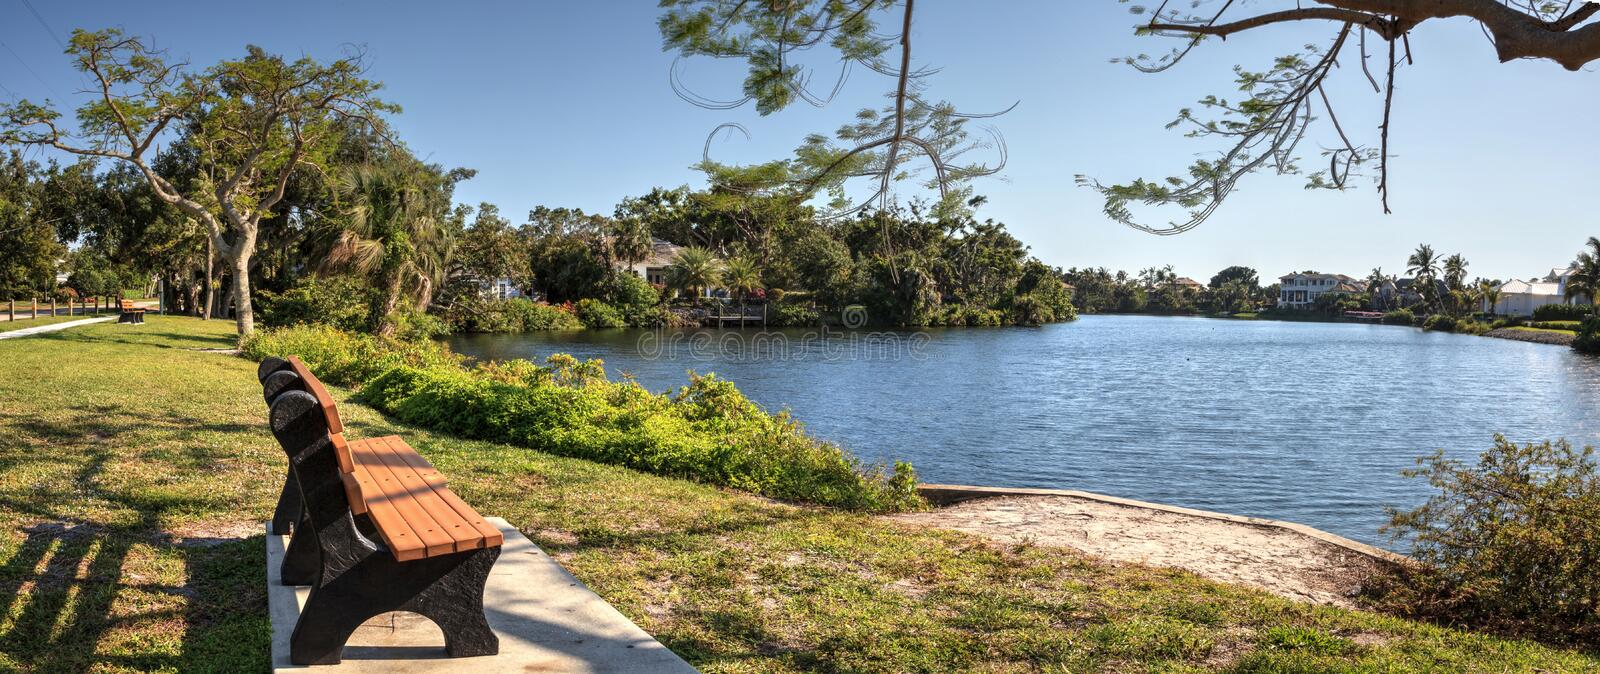 Pond and a park from a bench in Naples, Florida stock image